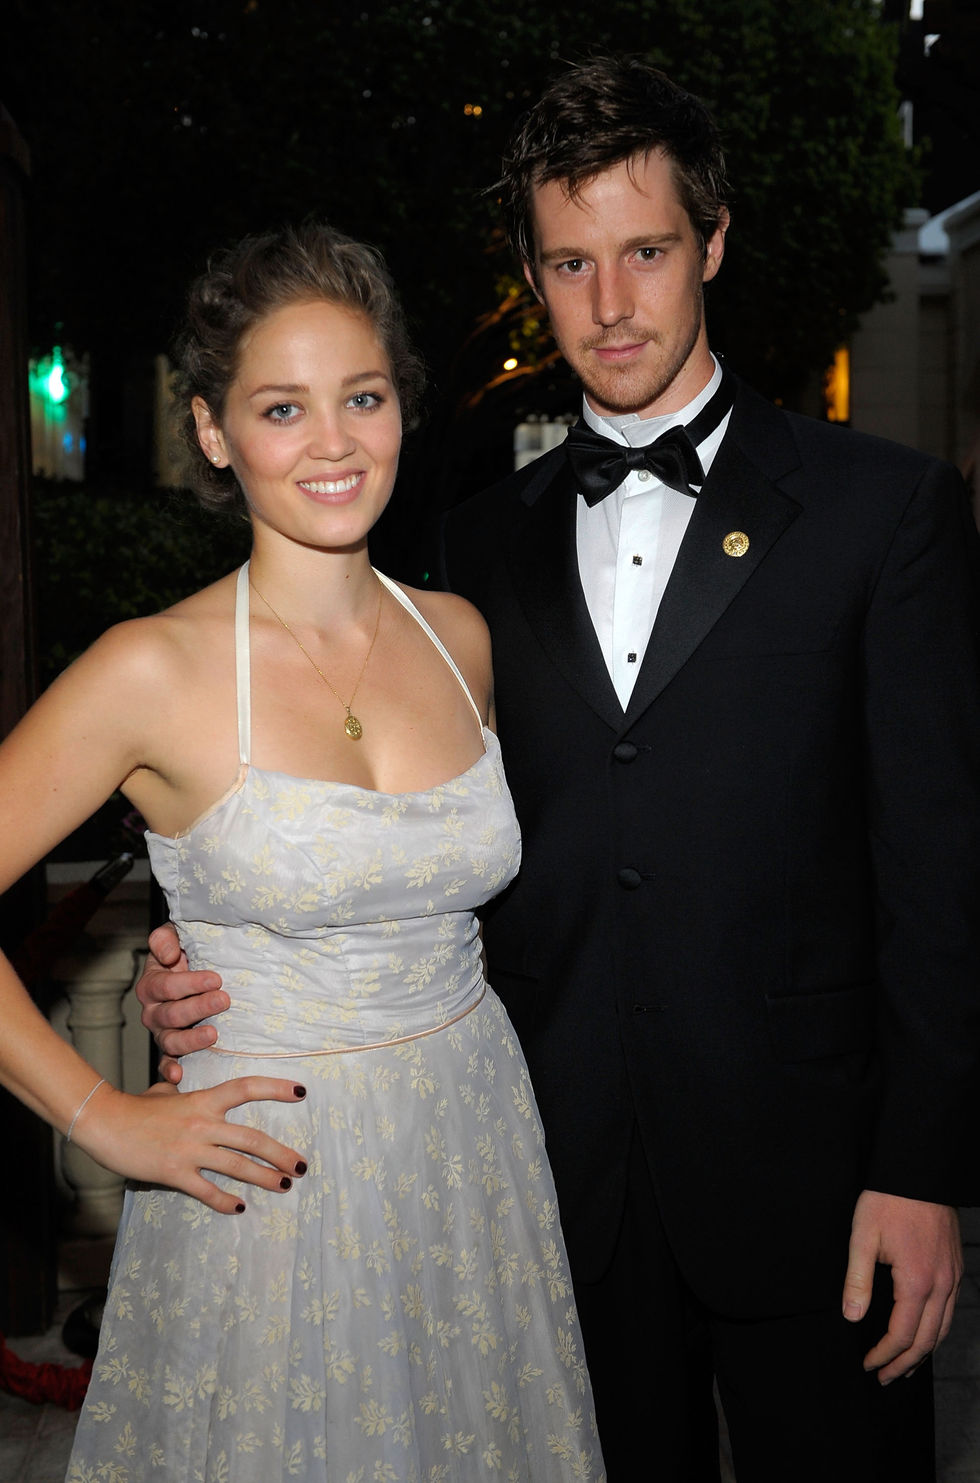 erika-christensen-39th-annual-church-of-scientology-anniversary-gala-in-hollywood-01